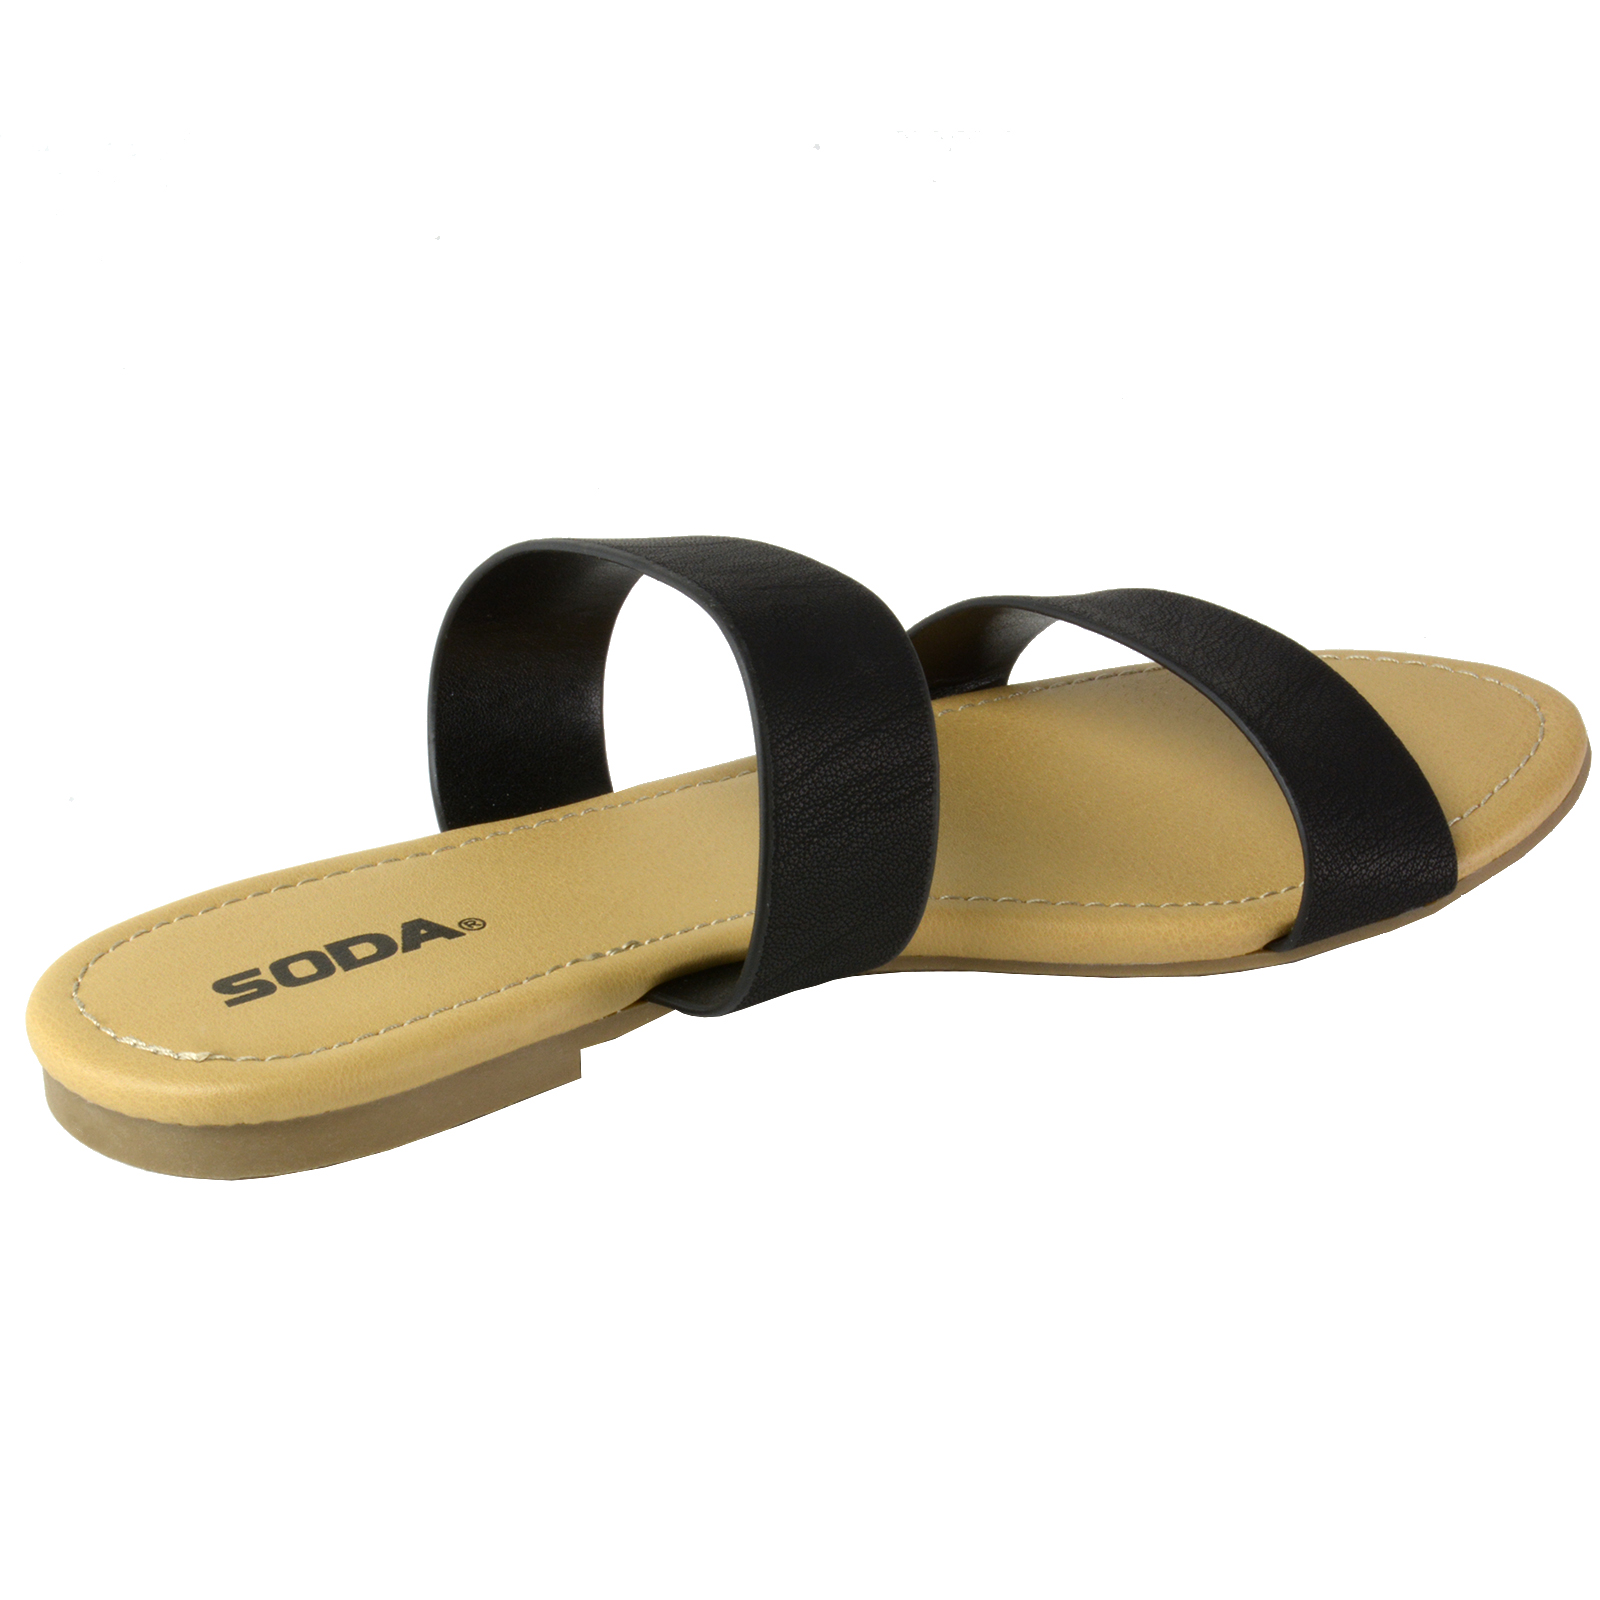 2b768eb2b Soda Browse Women s Slides Slip On Flat Summer Shoes Double Strap ...